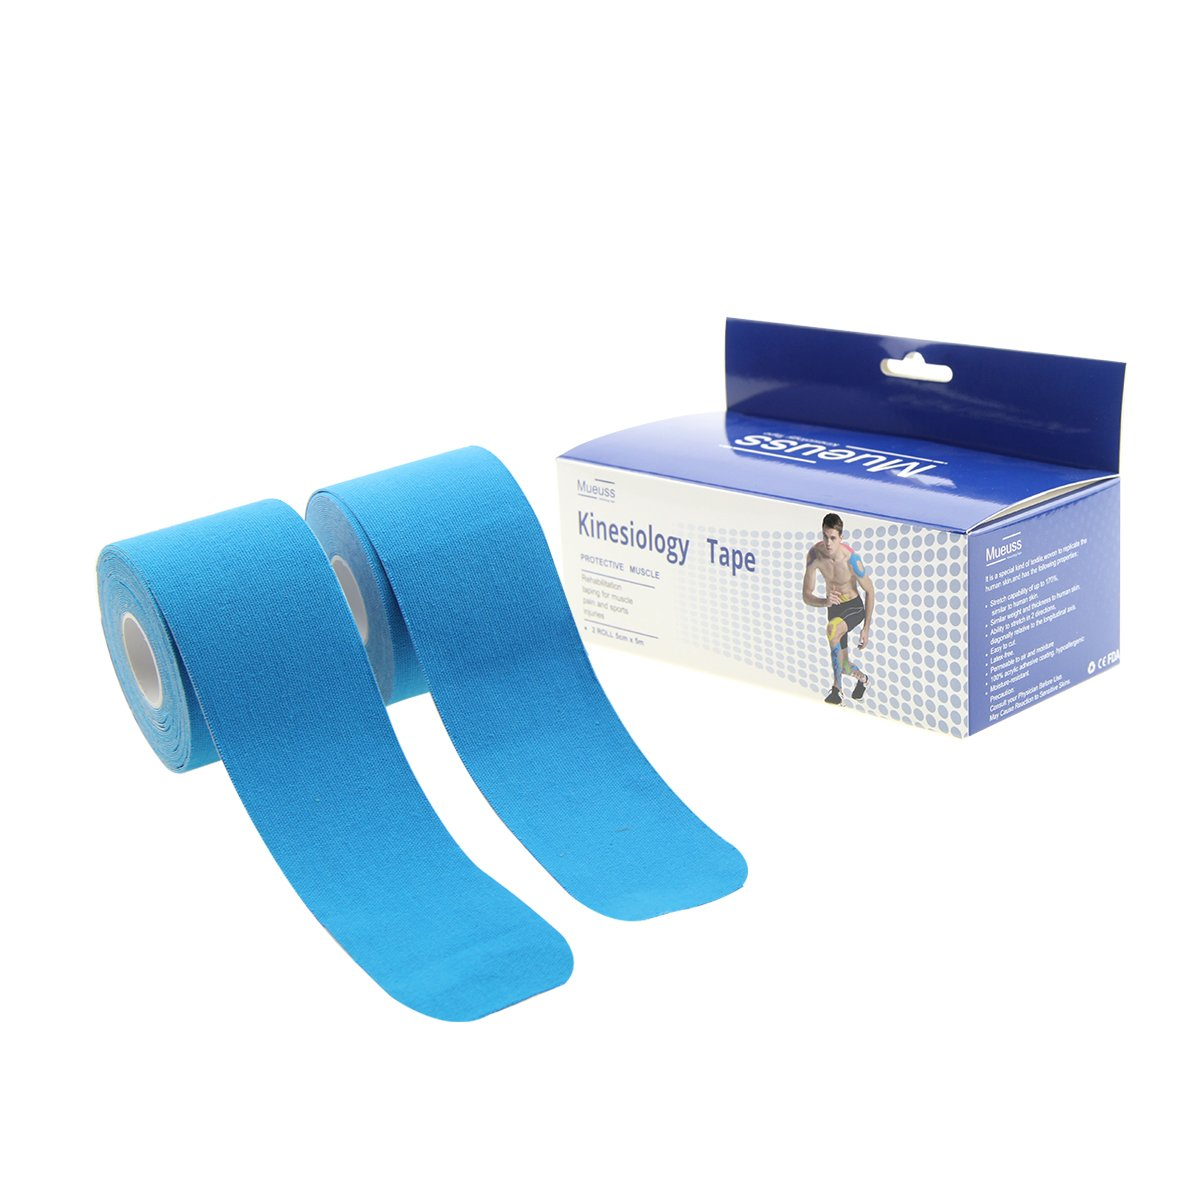 Elastic Kinesiology Tape 20 Pre Cut 10 inch Profession Sports Therapeutic for Muscle & Joint Support Hypoallergenic 2 Roll Blue